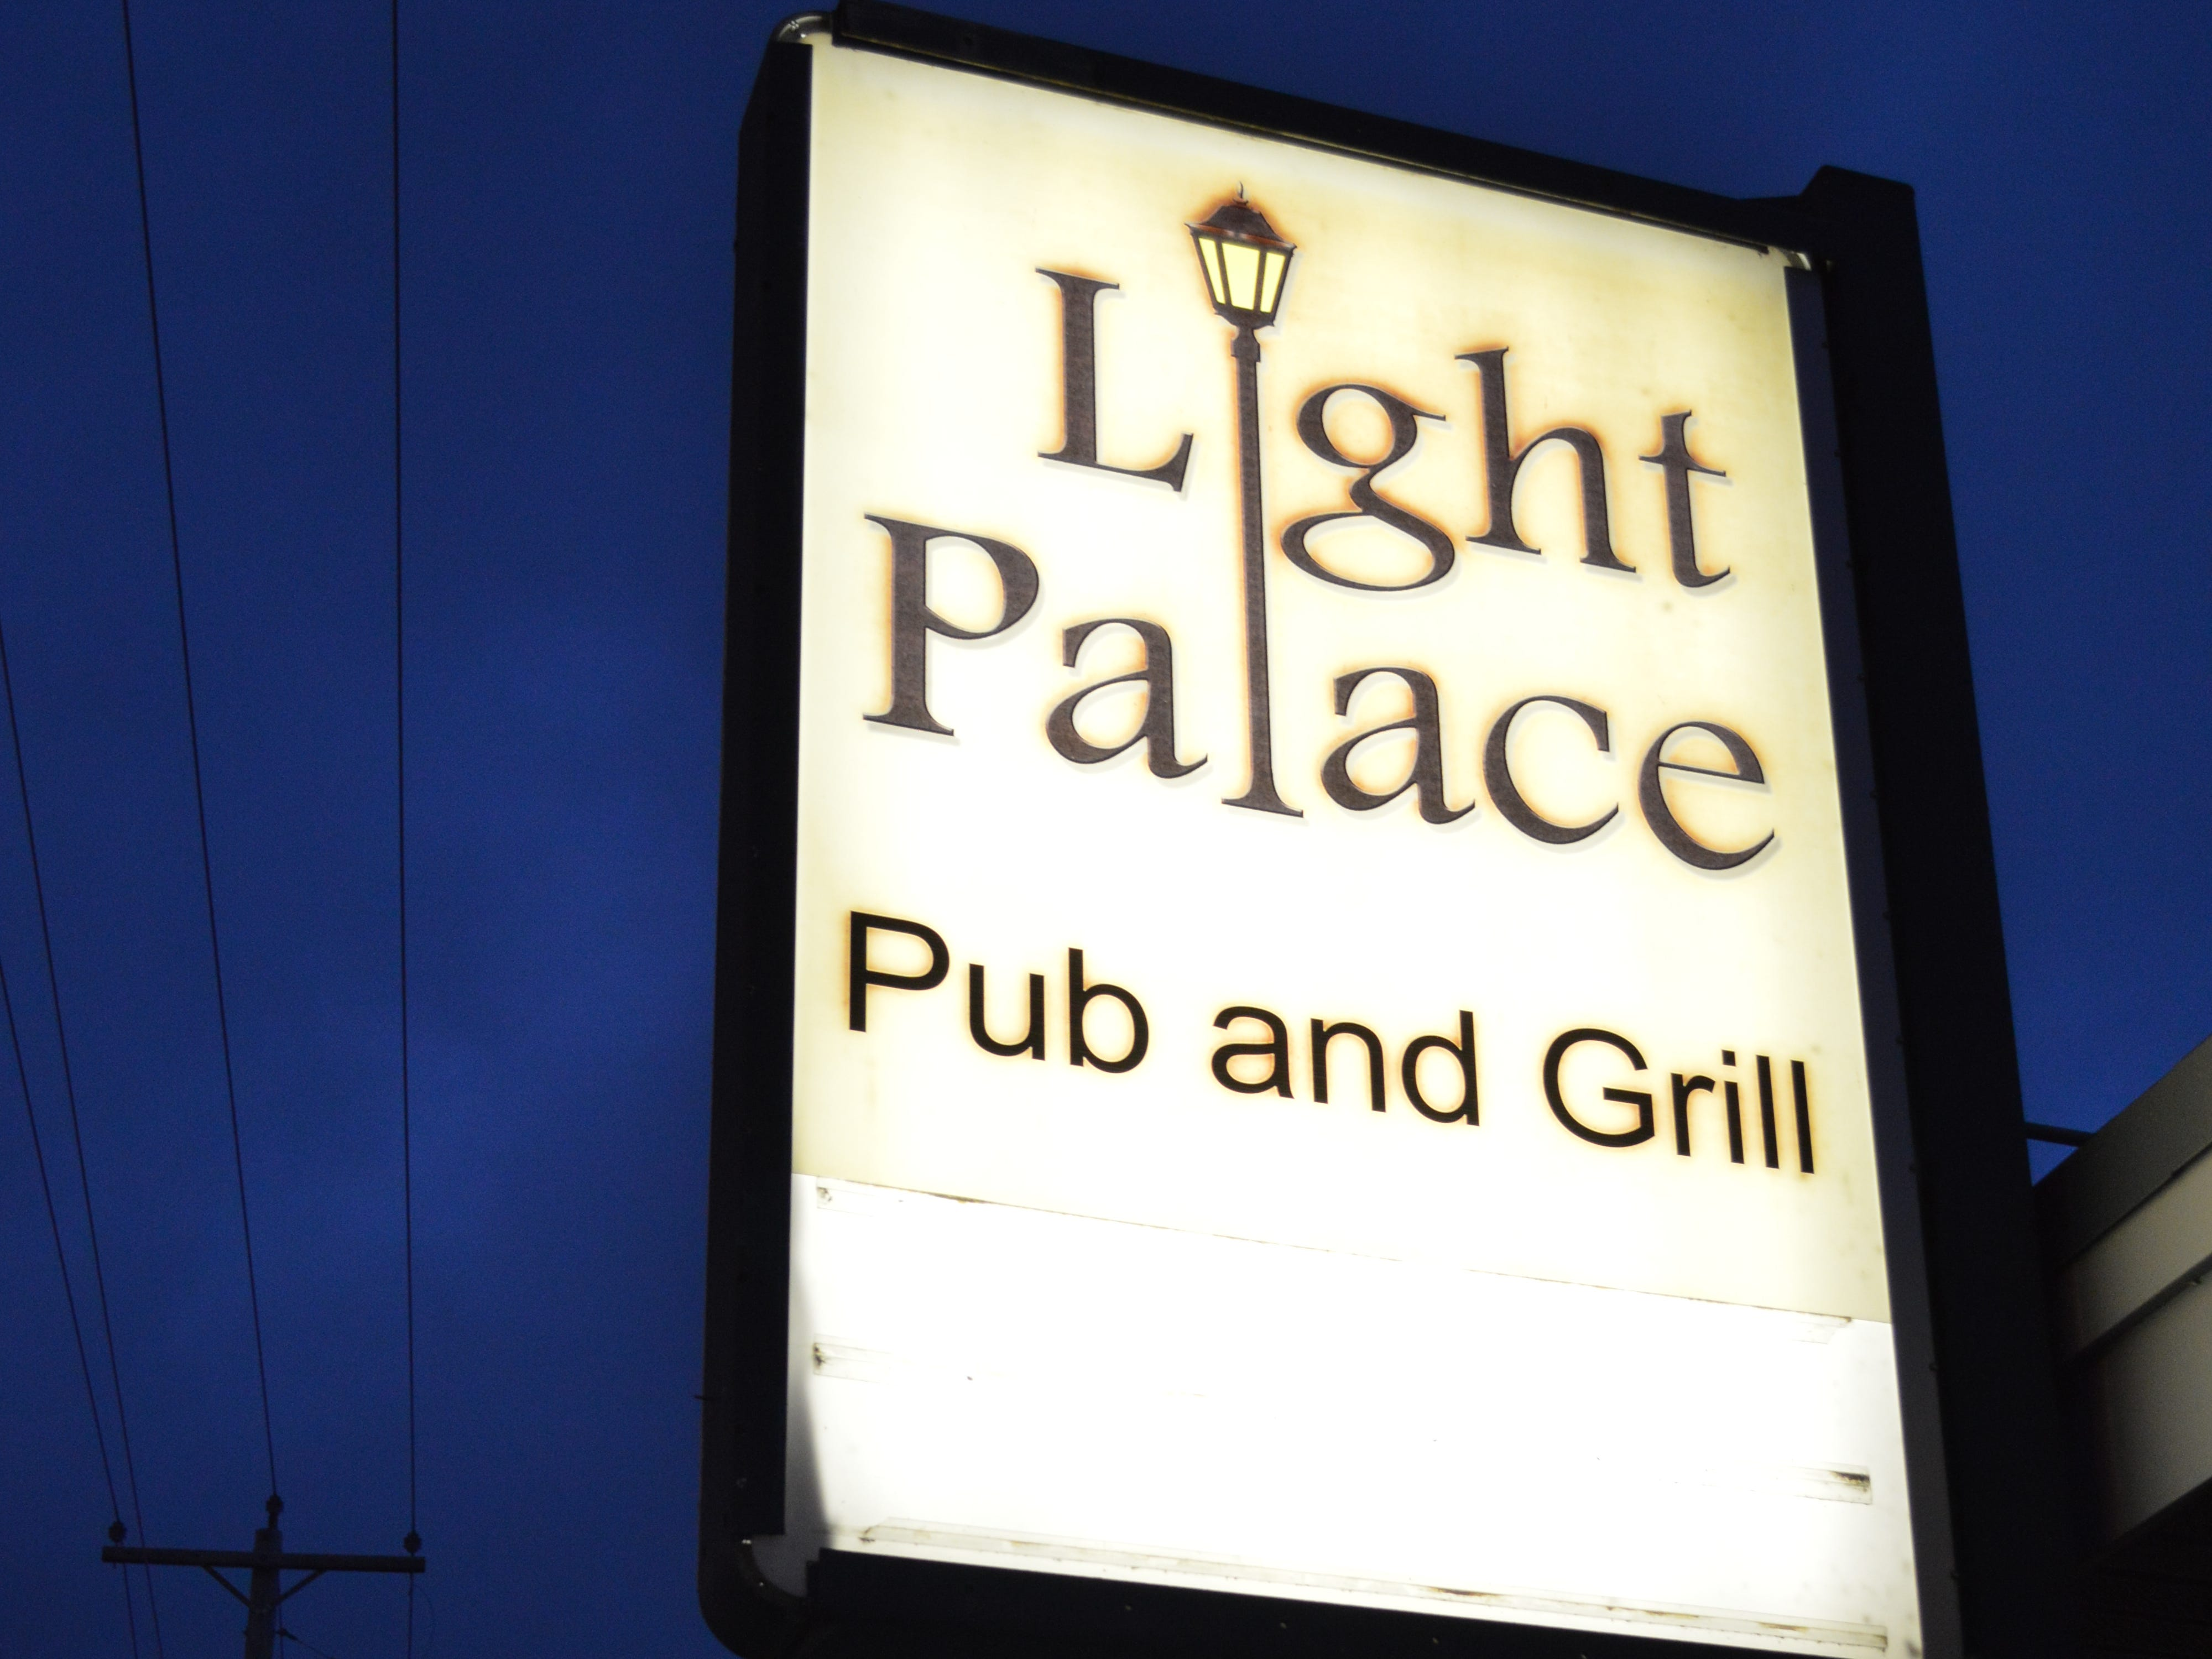 Light Palace Pub and Grill is located at 5880 S. Packard Ave., Cudahy.